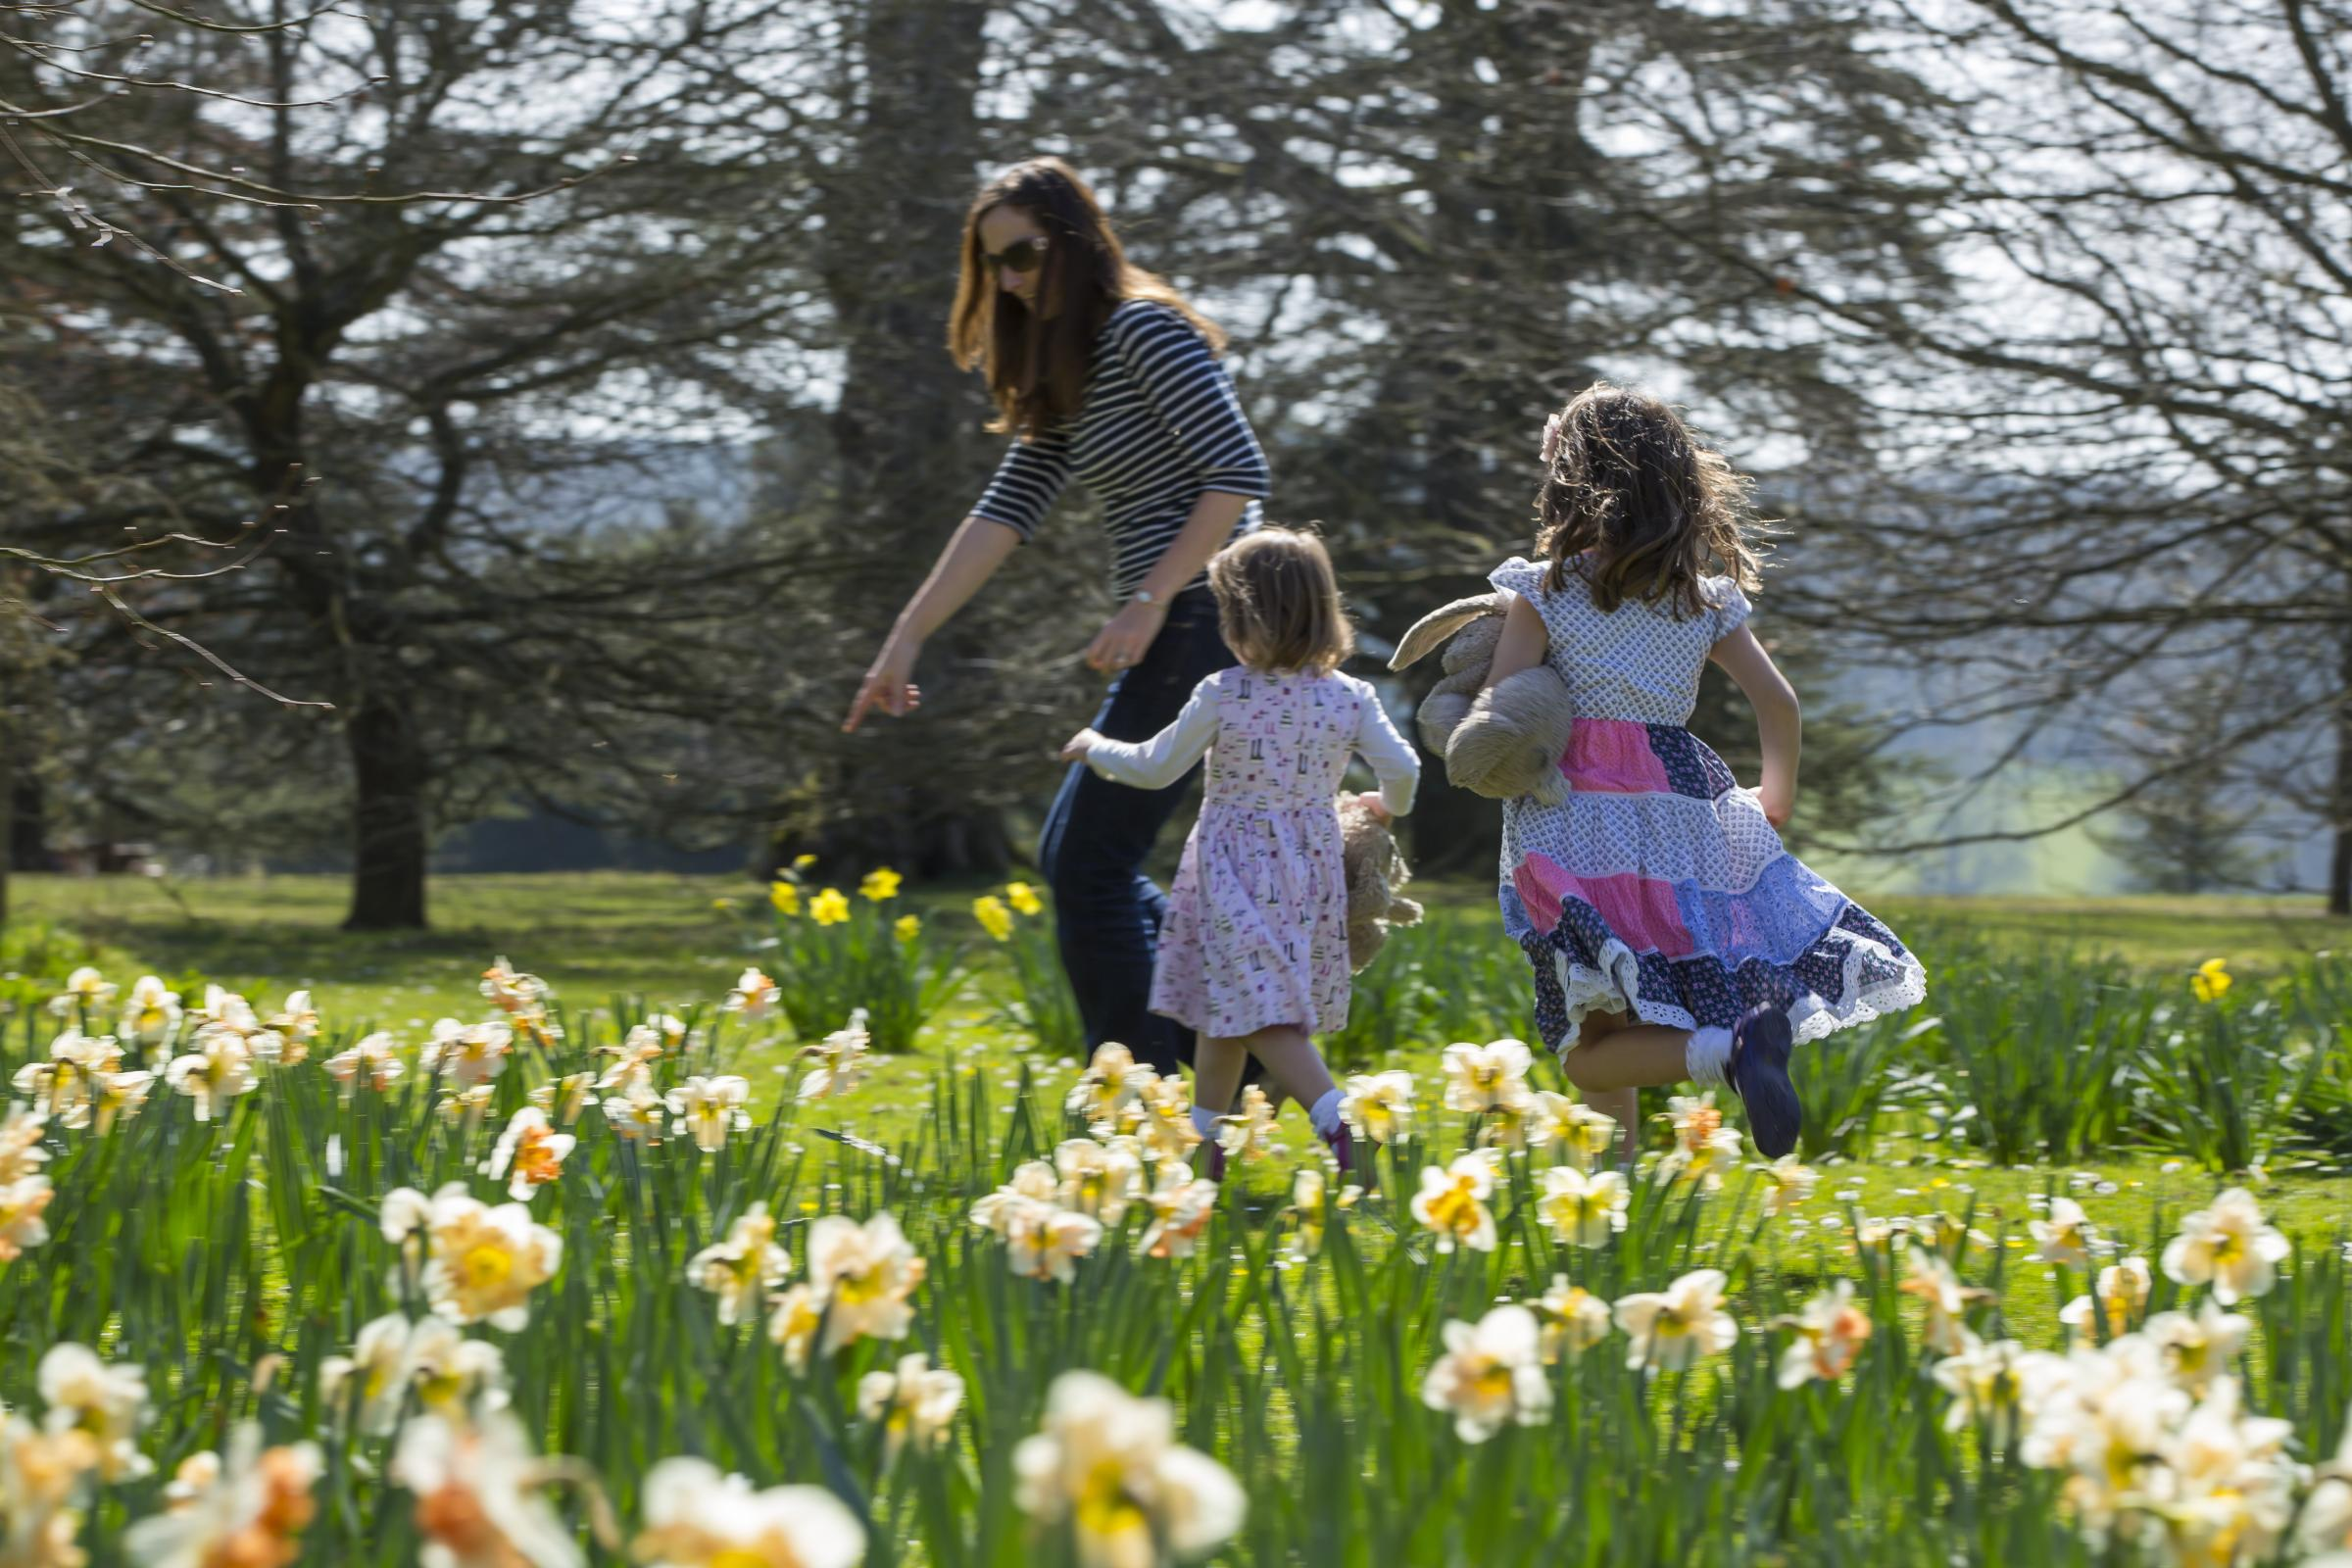 10 things to do in dorset and the new forest over easter 10 things to do in dorset and the new forest over easter bournemouth echo negle Image collections